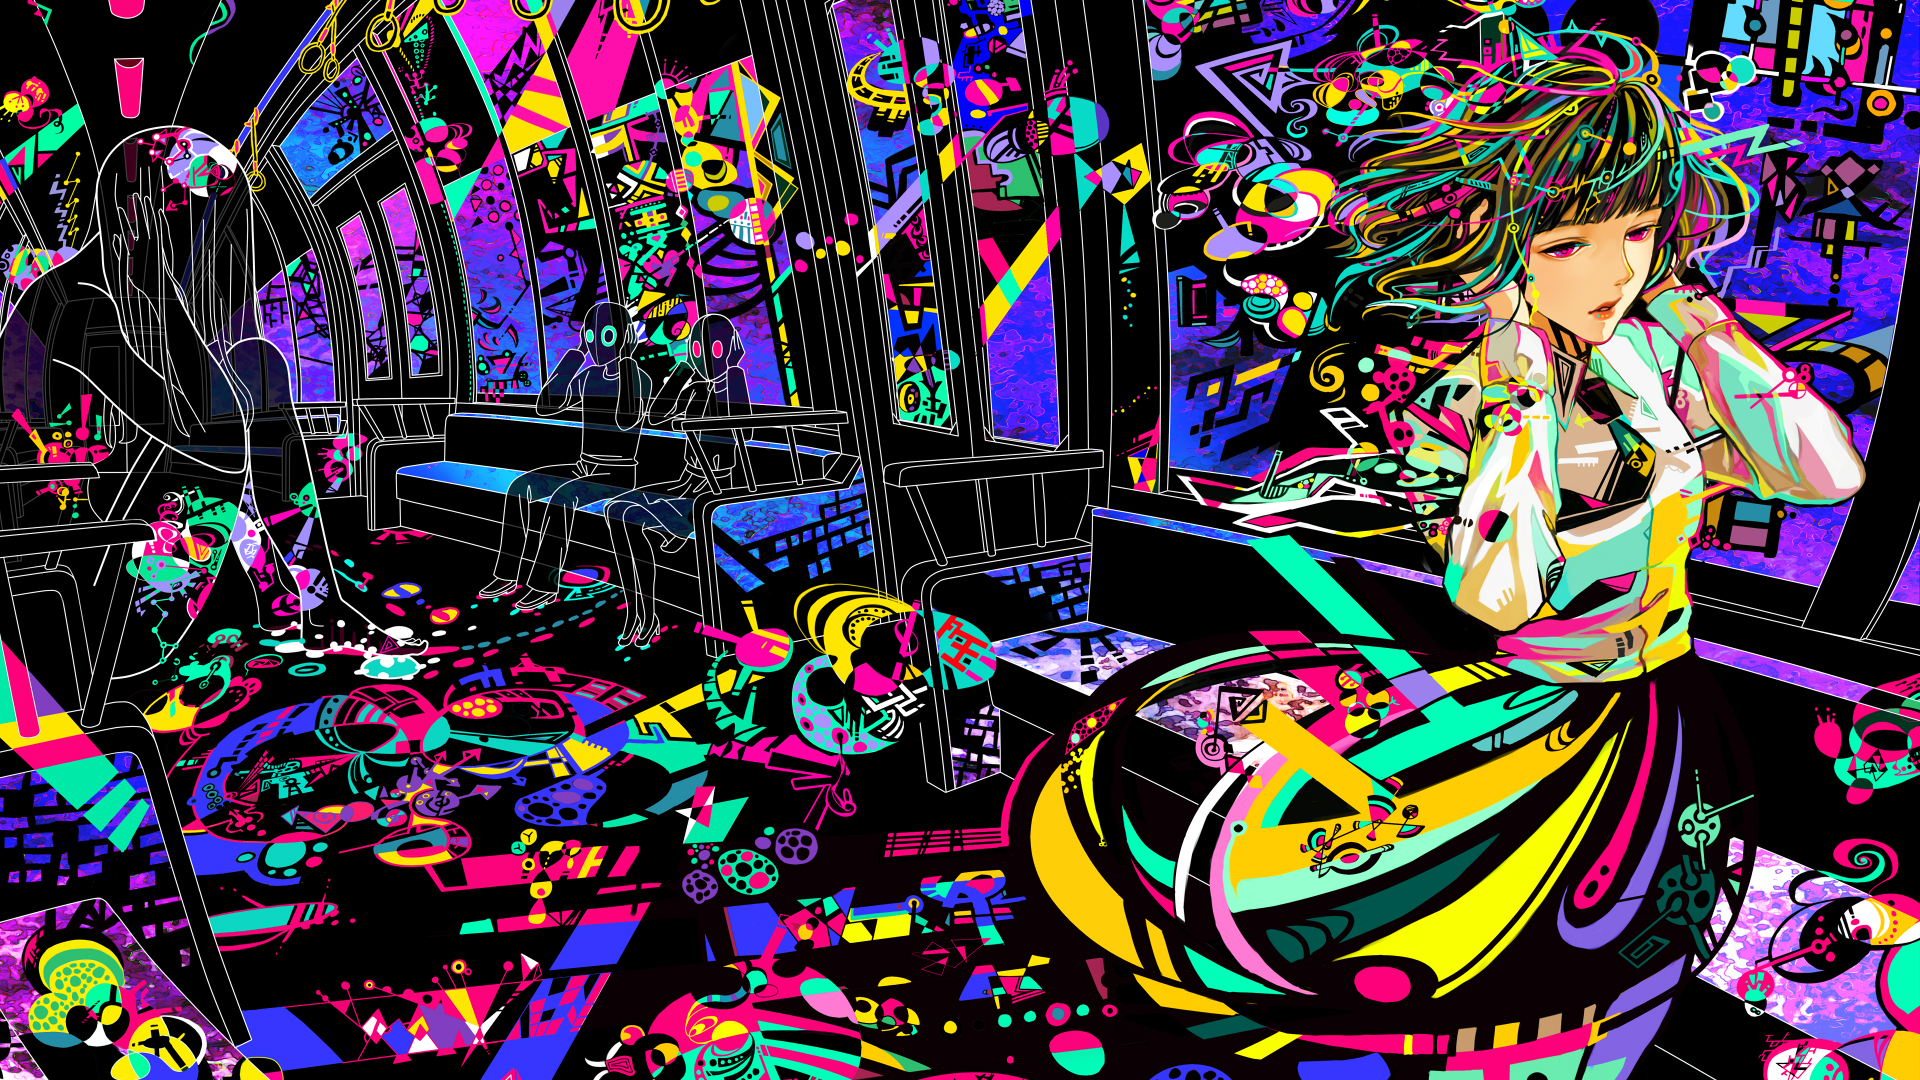 Anime Wall Dump Trippy Wallpaper Trippy Backgrounds Posters